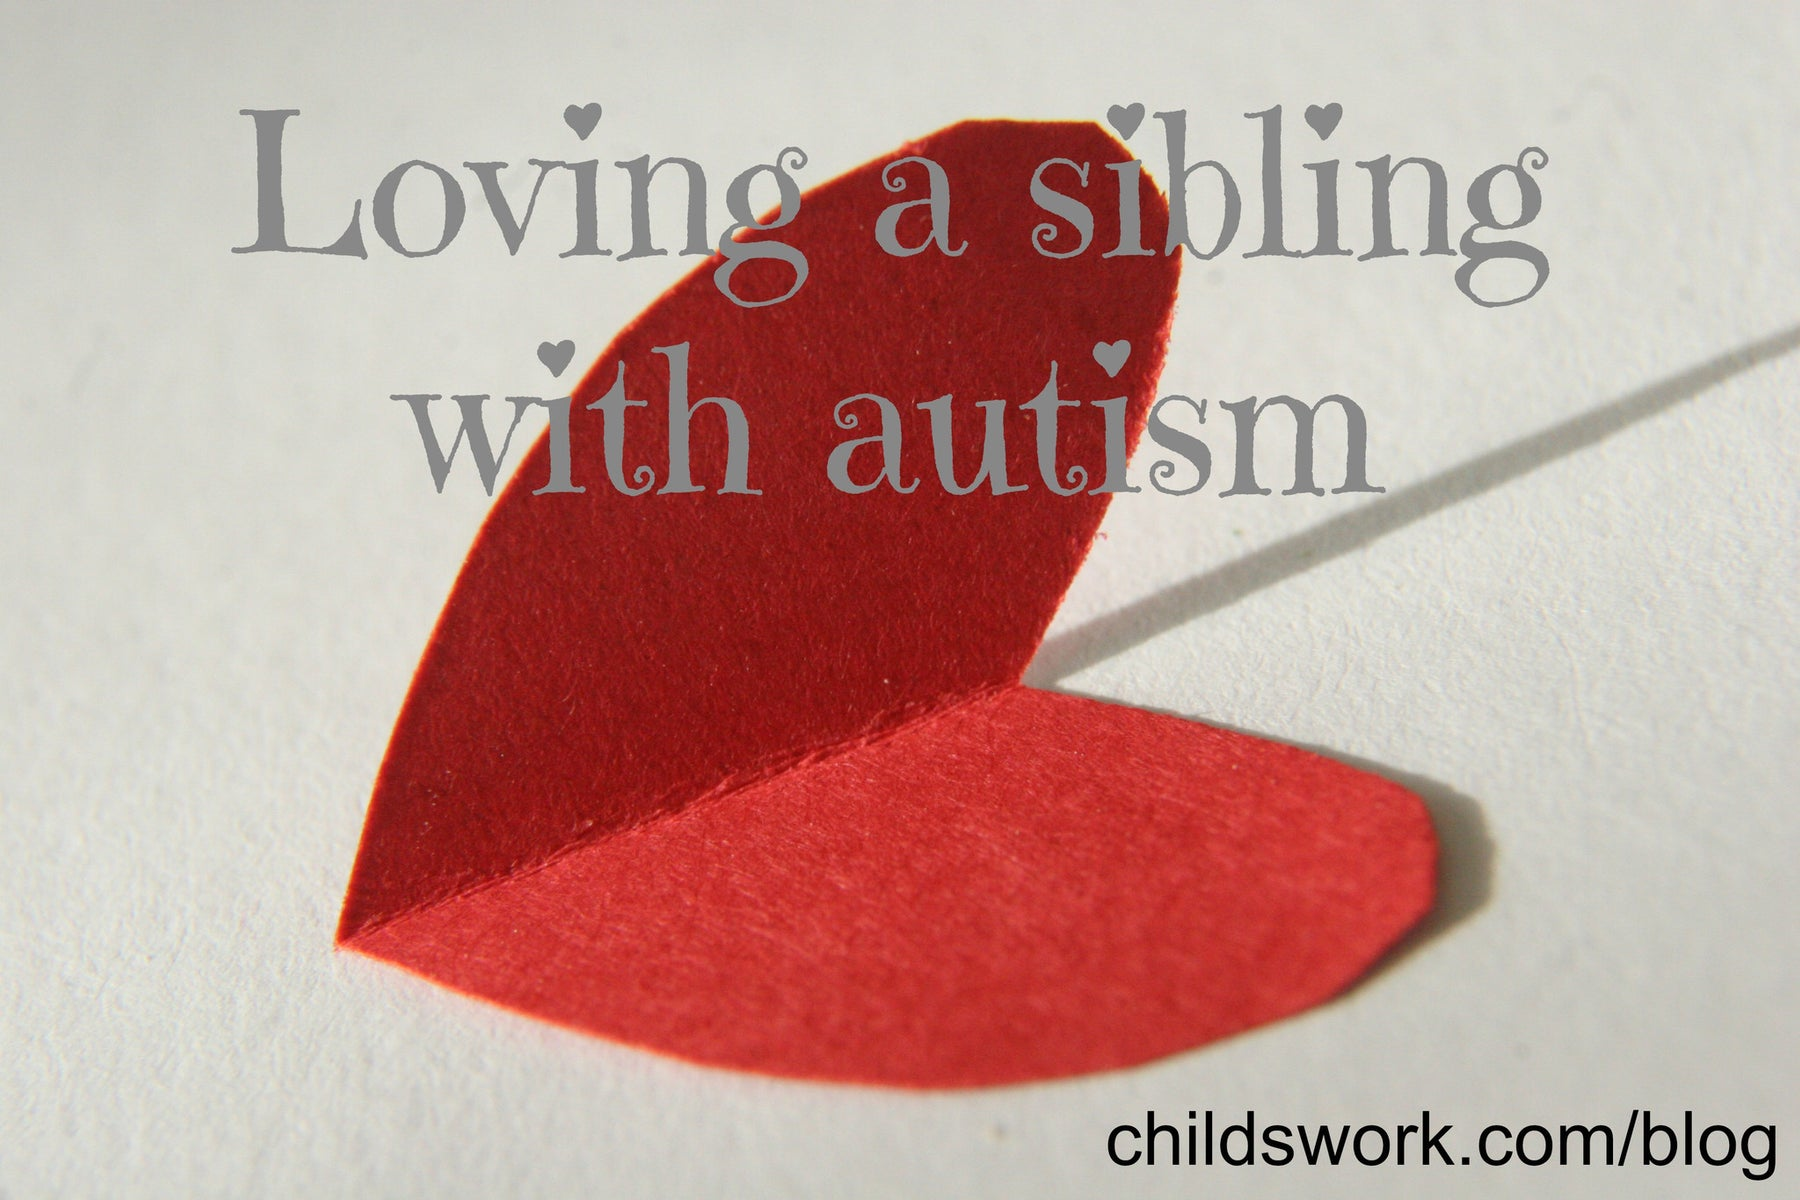 Having a sibling with autism